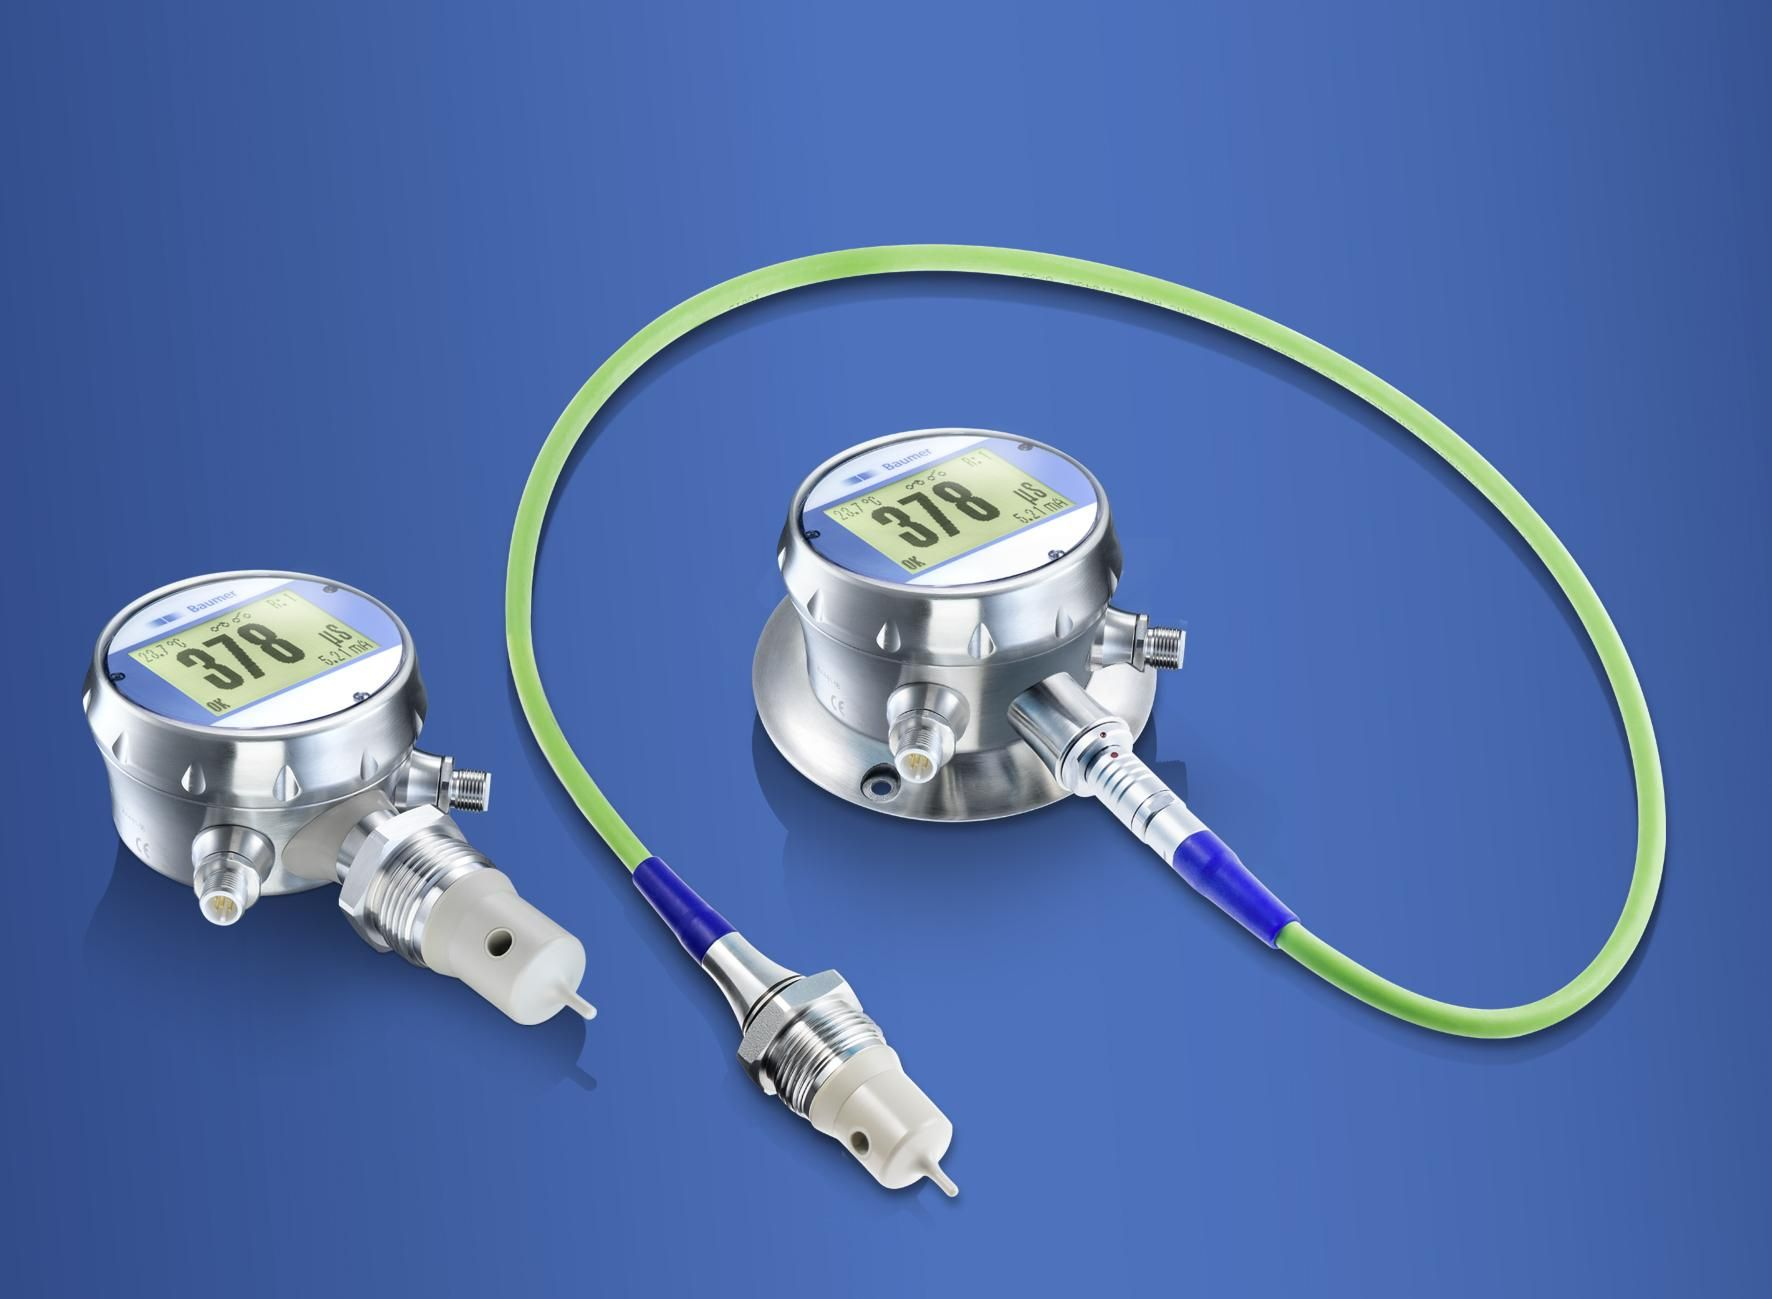 Save water, cleaning agents, and costs – the high-speed CombiLyz conductivity sensor from Baumer